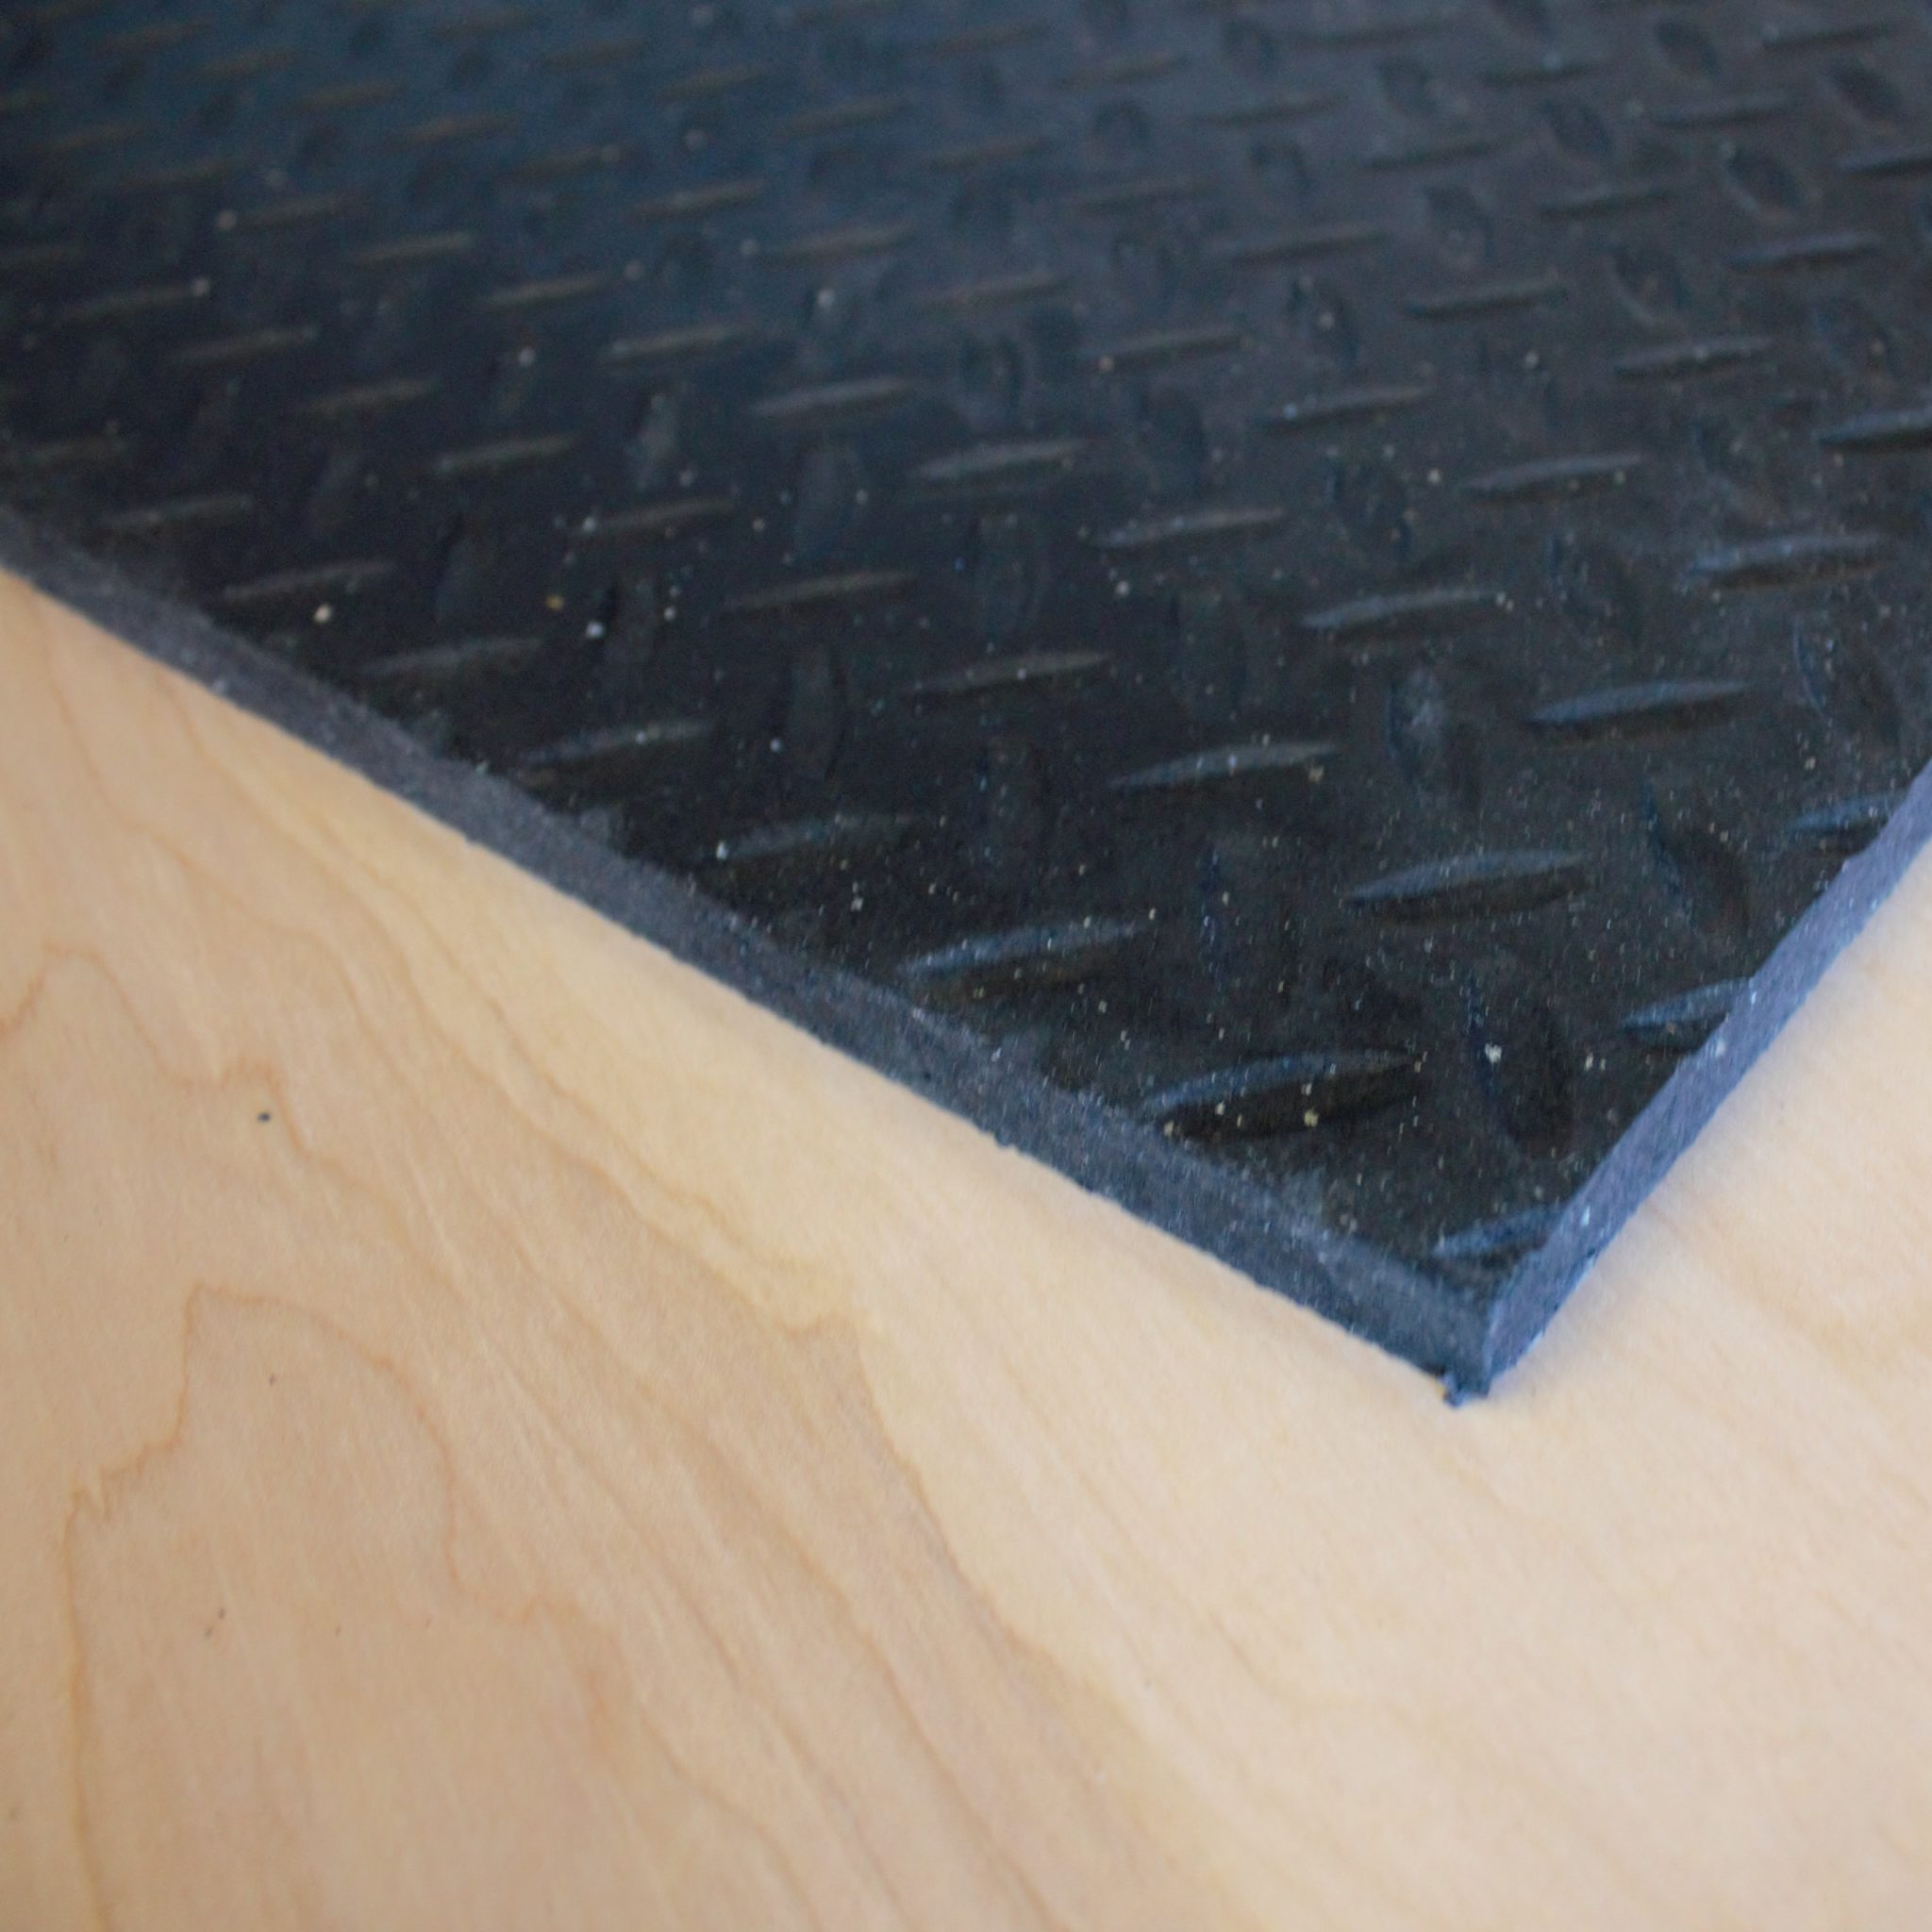 flooring mats related meze rubber blog galerie post cost collection attachment roth of prado wood amp laminate floors calculator toyota ampamp floor lowes carpet